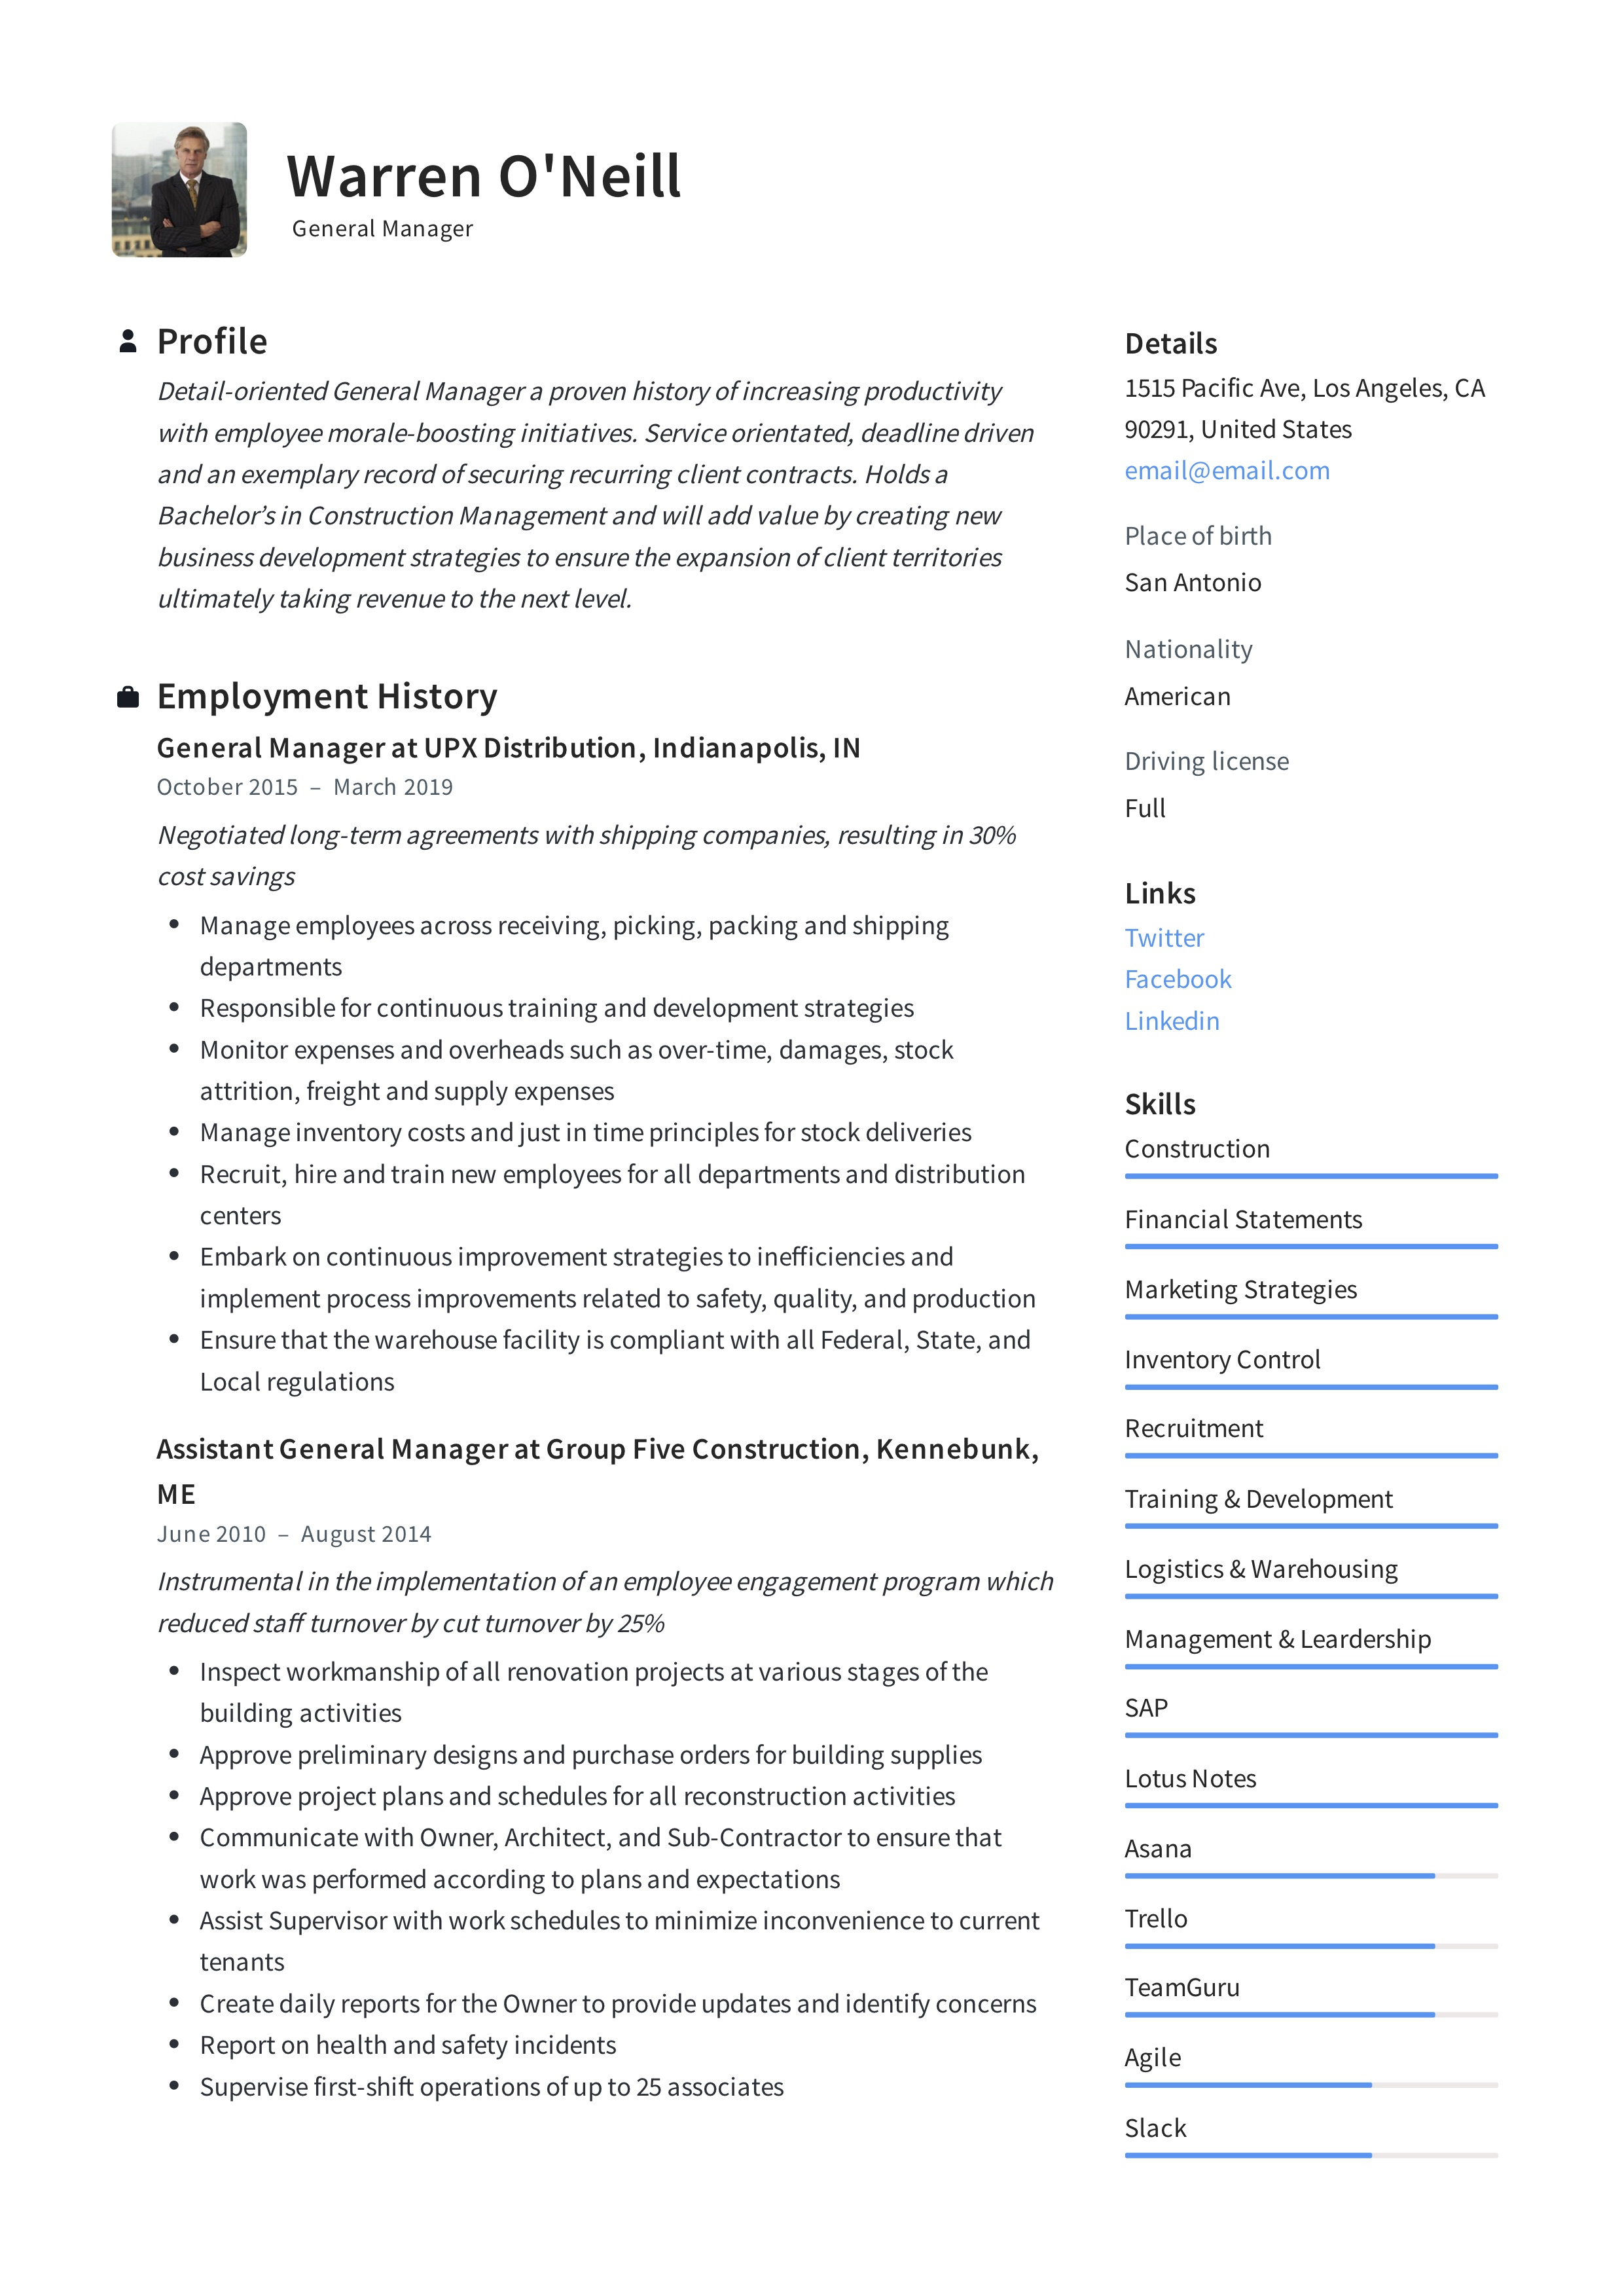 General Manager Resume Writing Guide